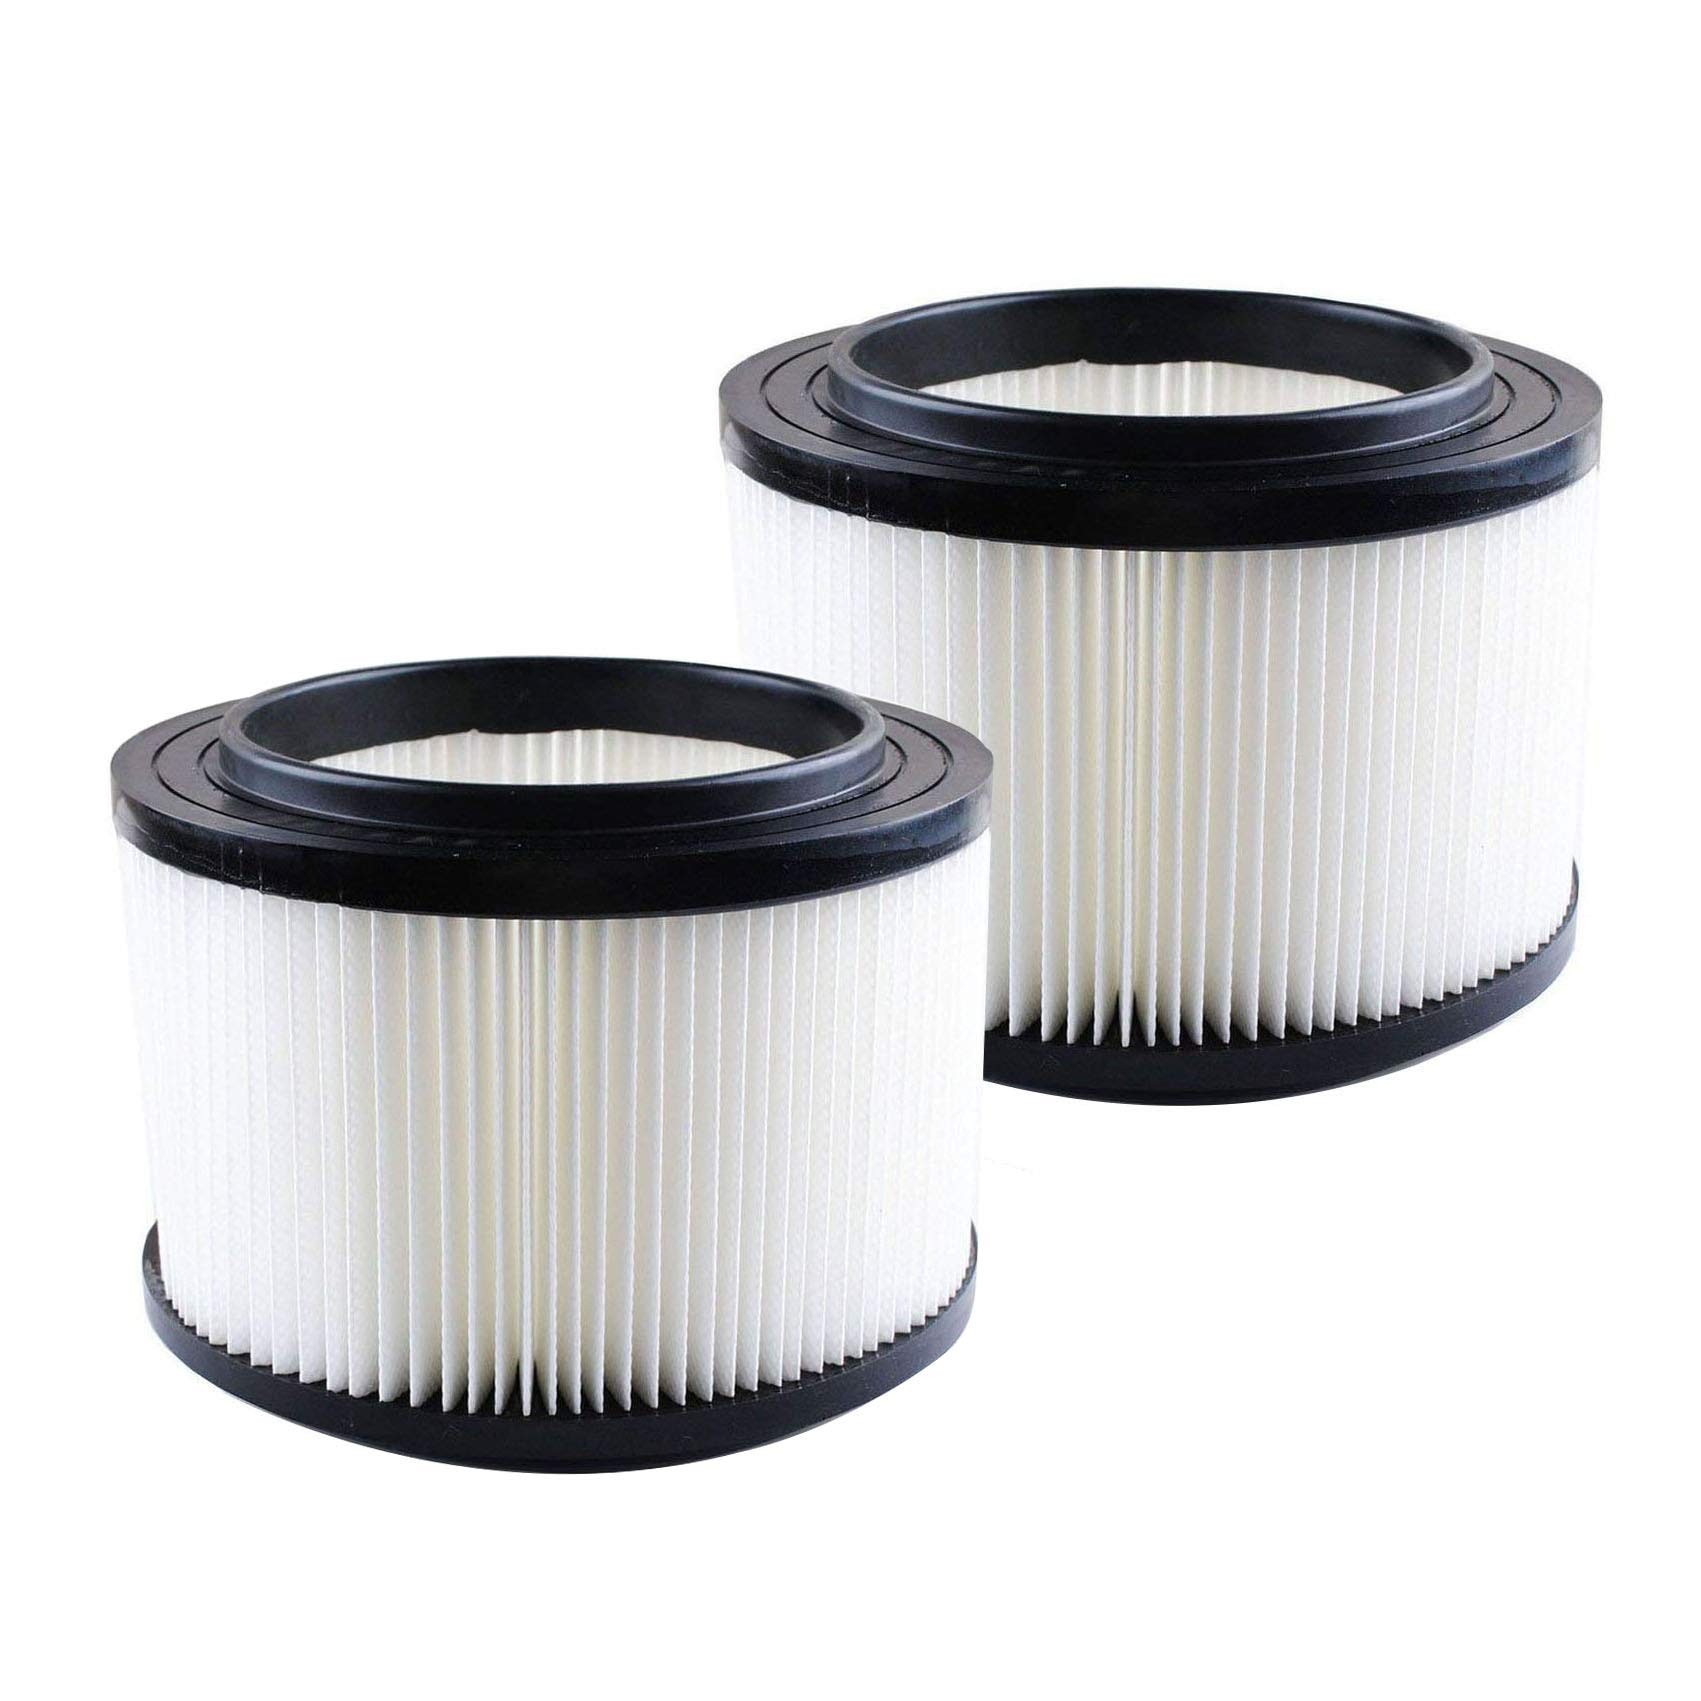 17810 Filter for Craftsman Shop Vac 9-17810,Wet Dry Vacuum Filter Fits for Craftsman 3 to 4-gallon (2 Pack) (white)